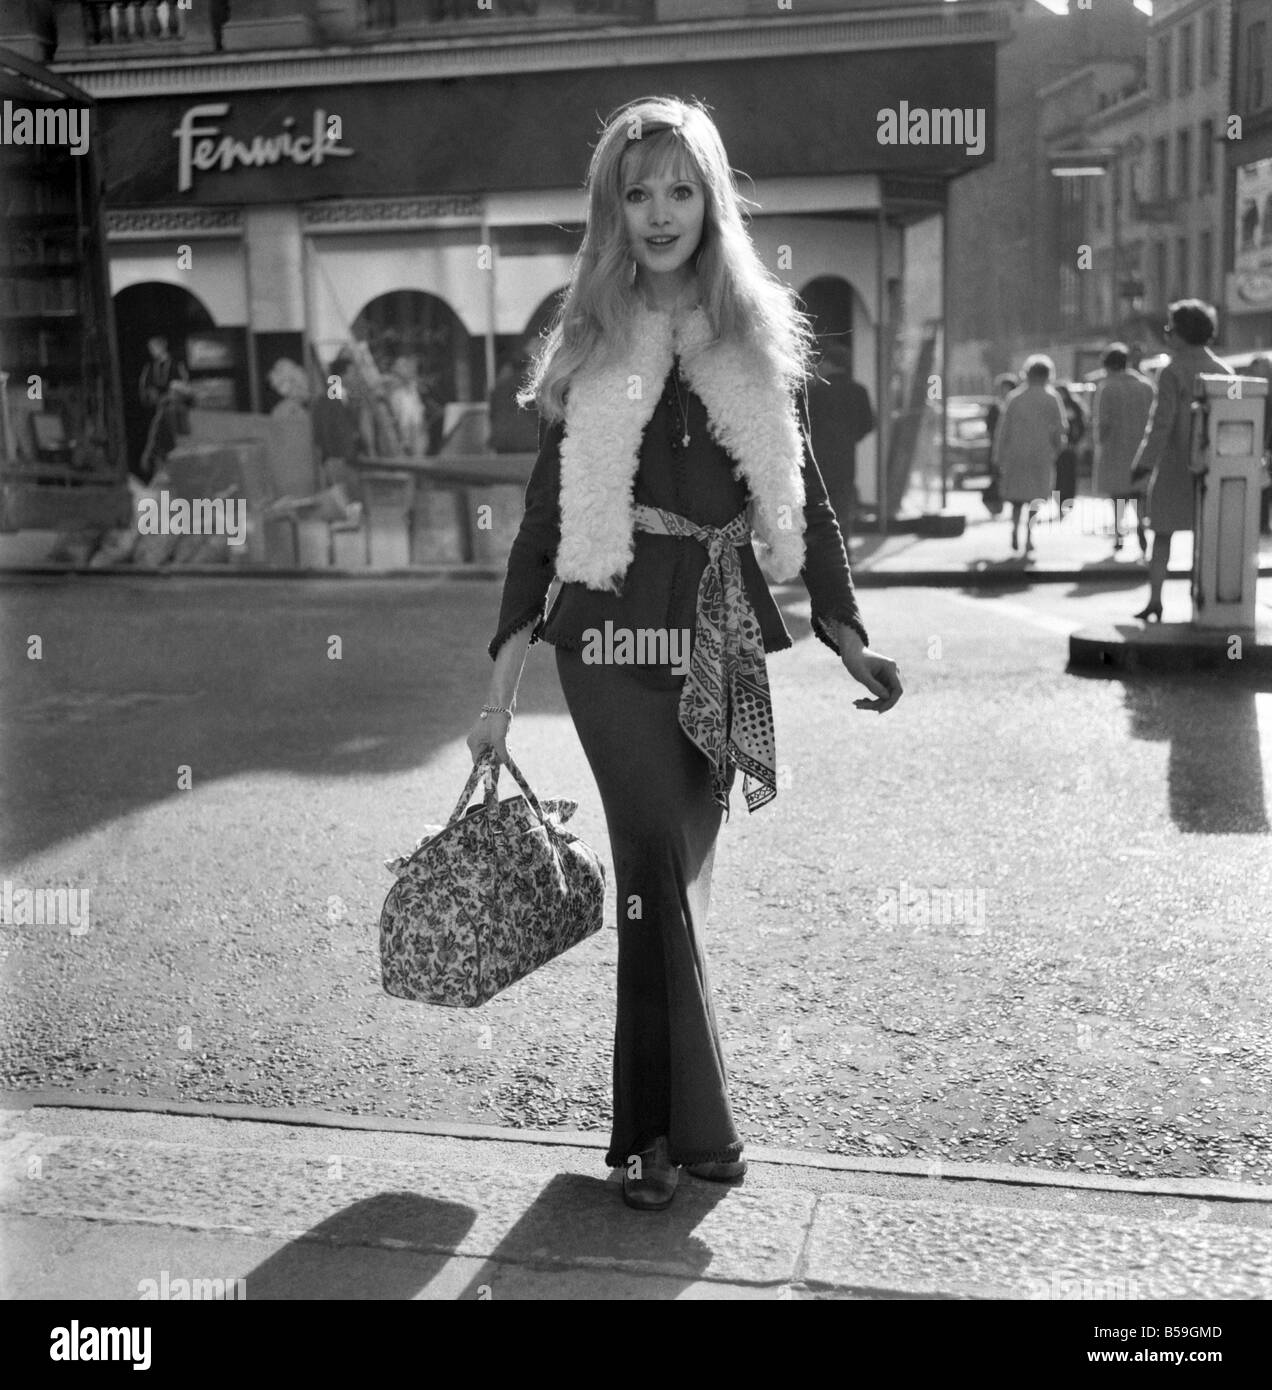 Fashion. Clothing. The first cool day and the maxi look seem to be the swinging London look. Actress Maddy Smith - Stock Image